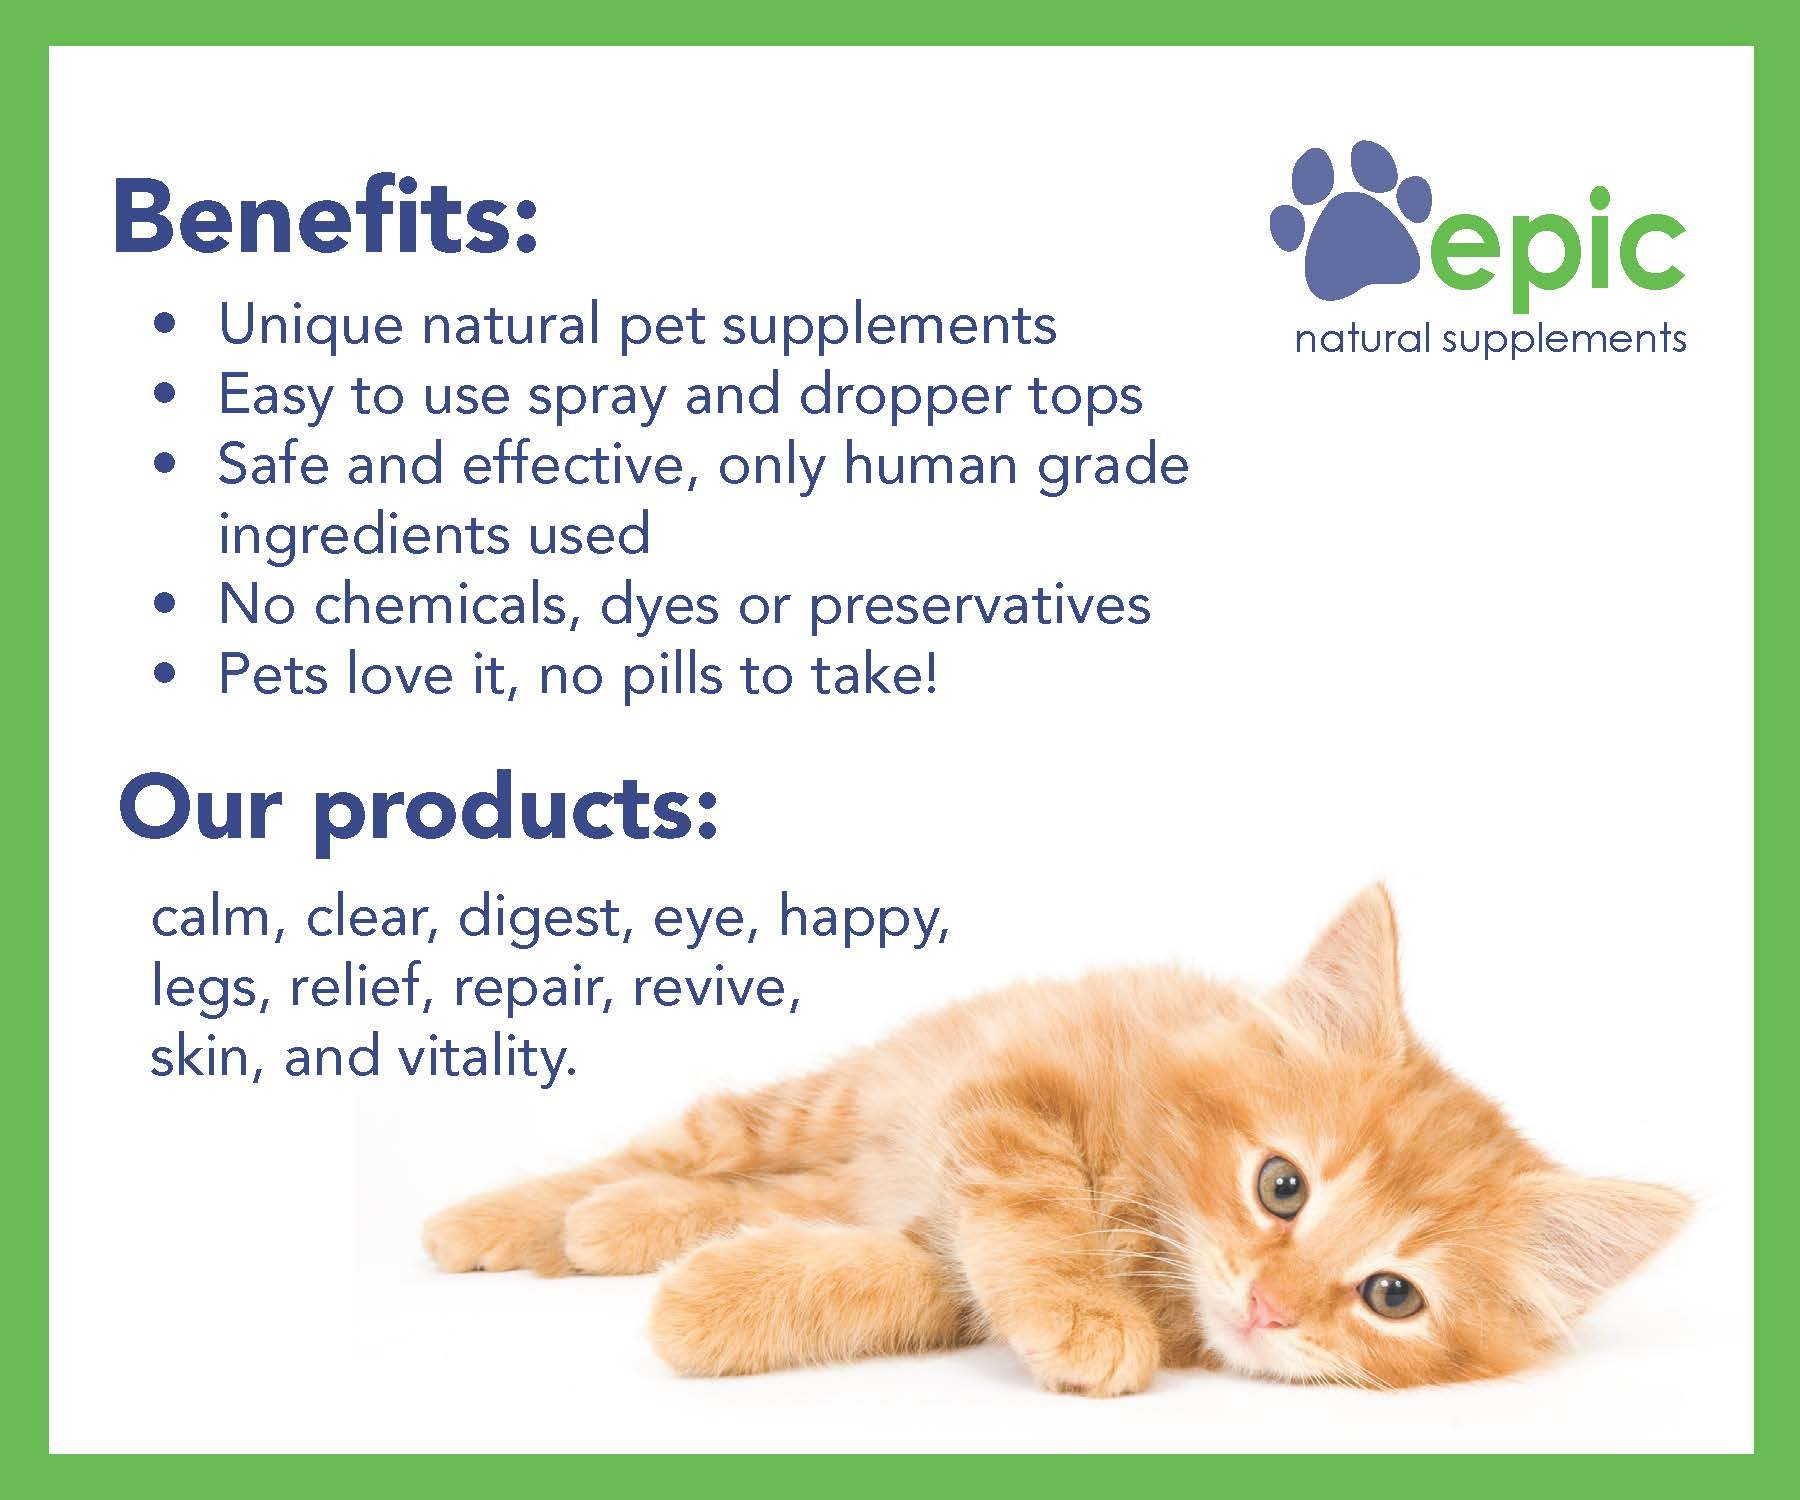 Epic Pet Health Calm - Natural Odorless Calming Sprays Made for Dogs and Cats That Promotes Calm and Relaxed Behavior. Made in USA (Dropper, 1 Ounce) by Epic Pet Health (Image #3)